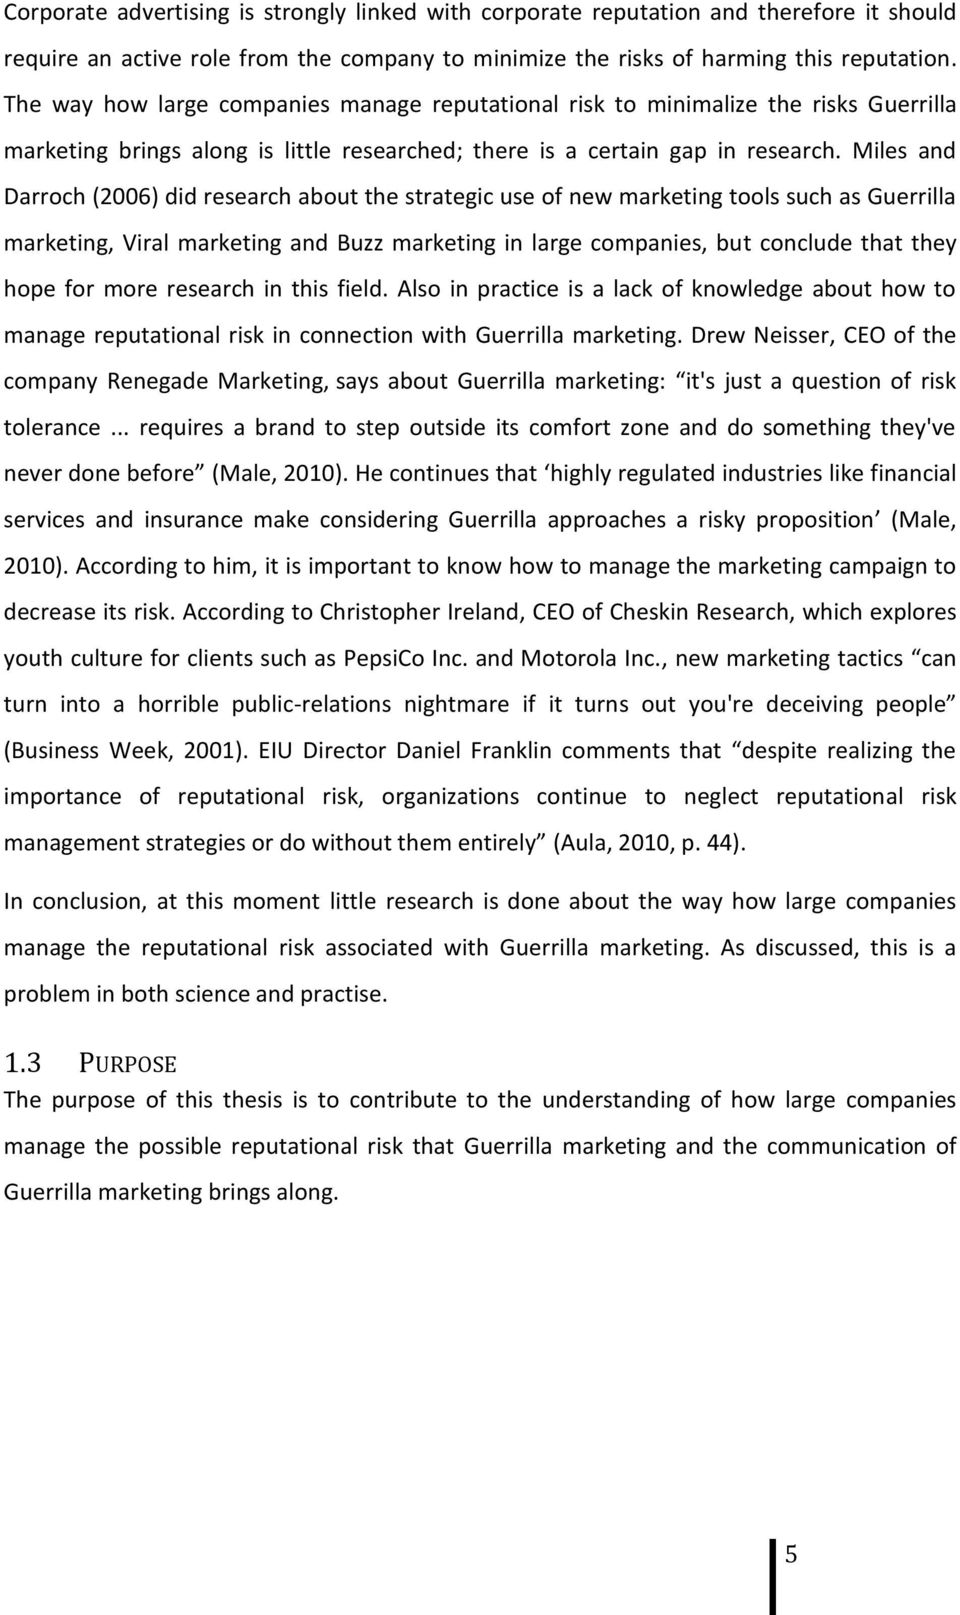 Miles and Darroch (2006) did research about the strategic use of new marketing tools such as Guerrilla marketing, Viral marketing and Buzz marketing in large companies, but conclude that they hope